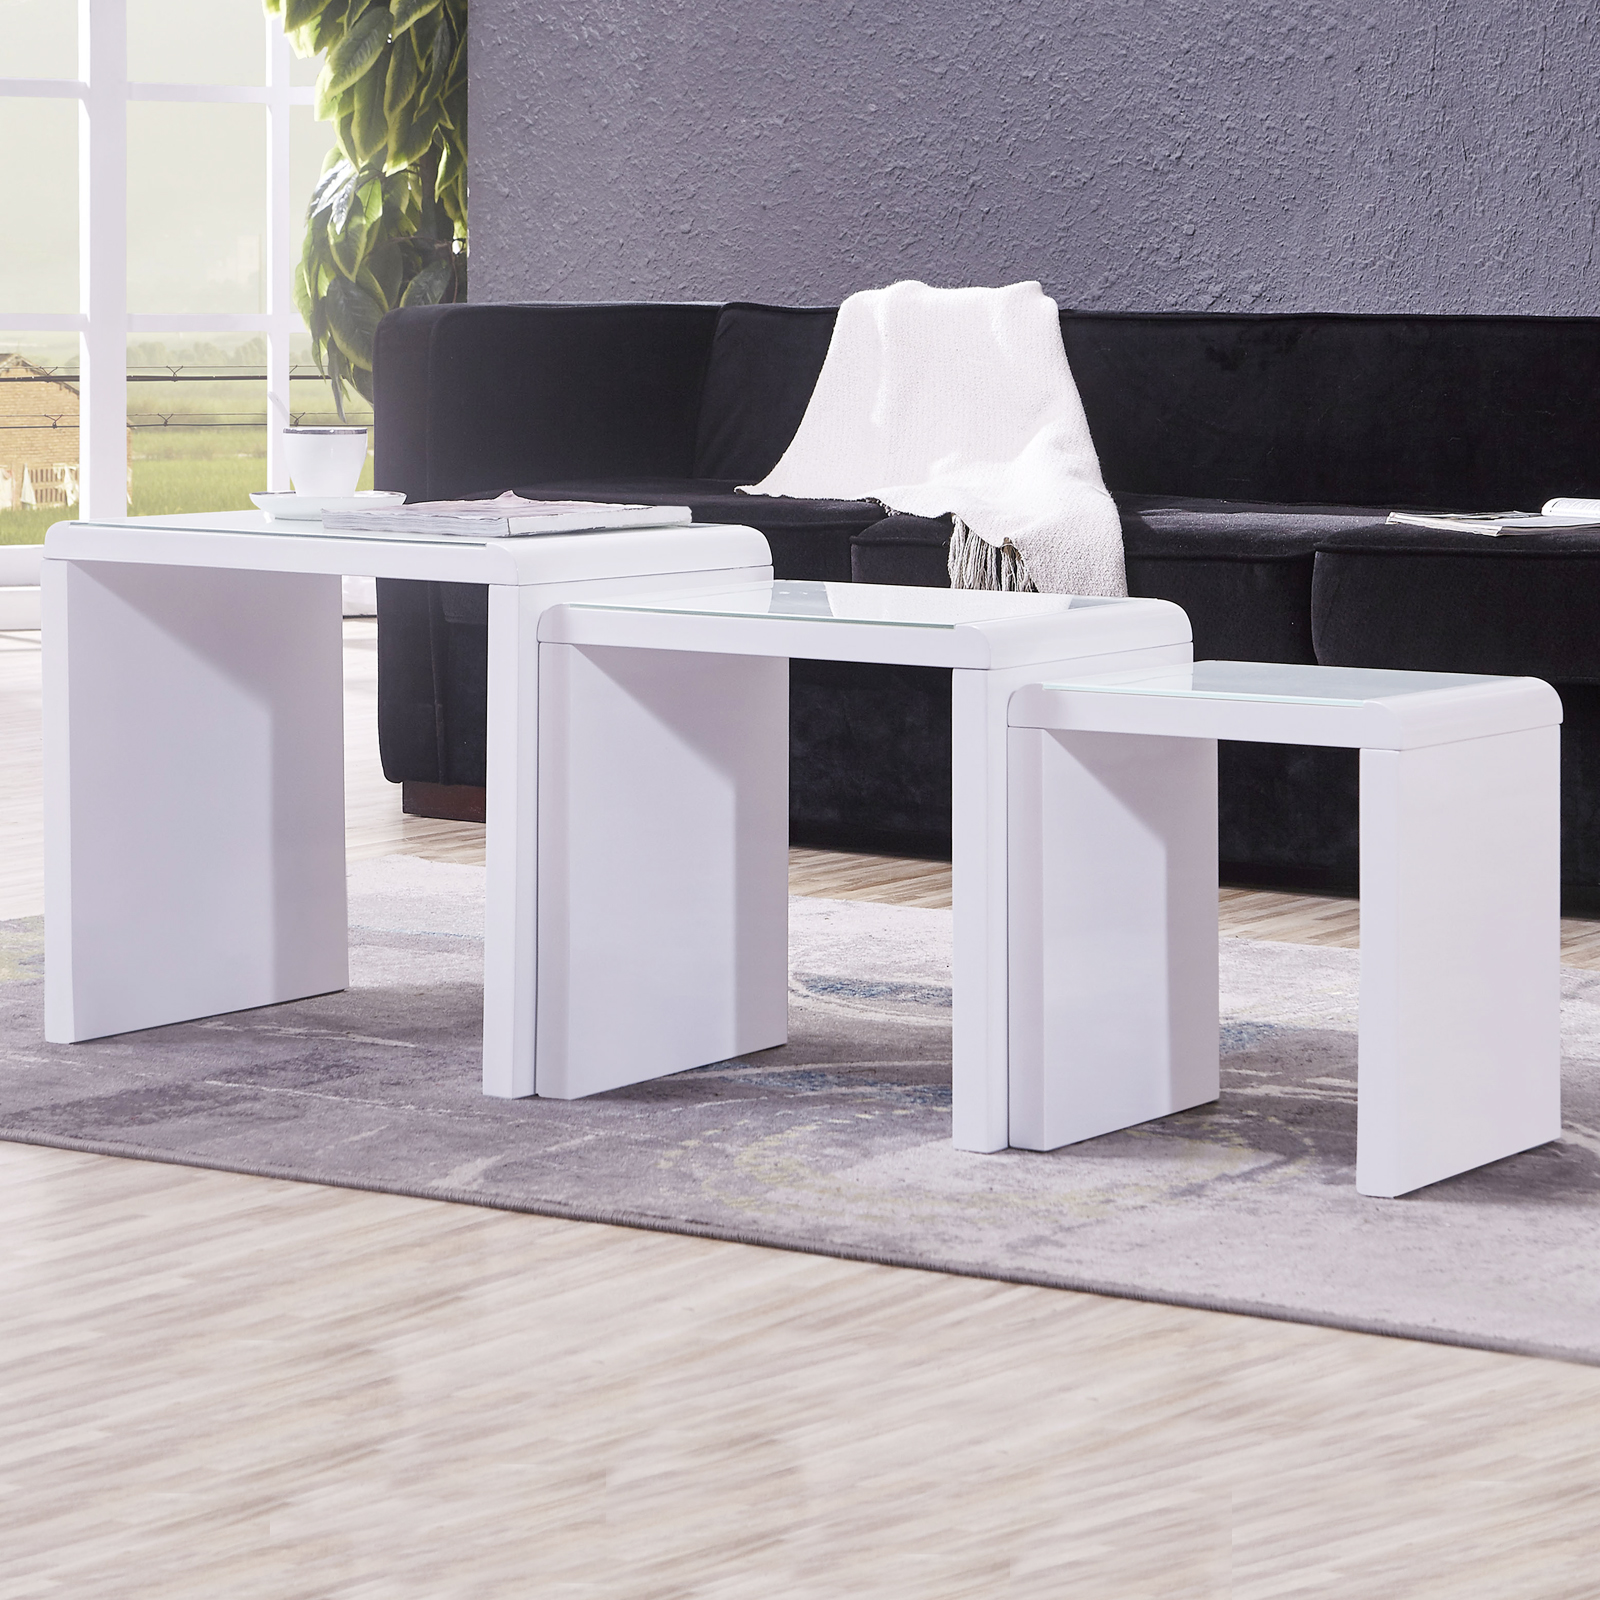 New Modern High Gloss White Rectangle Coffee Table Living: Modern Design High Gloss White + White Glass Nest Of 3